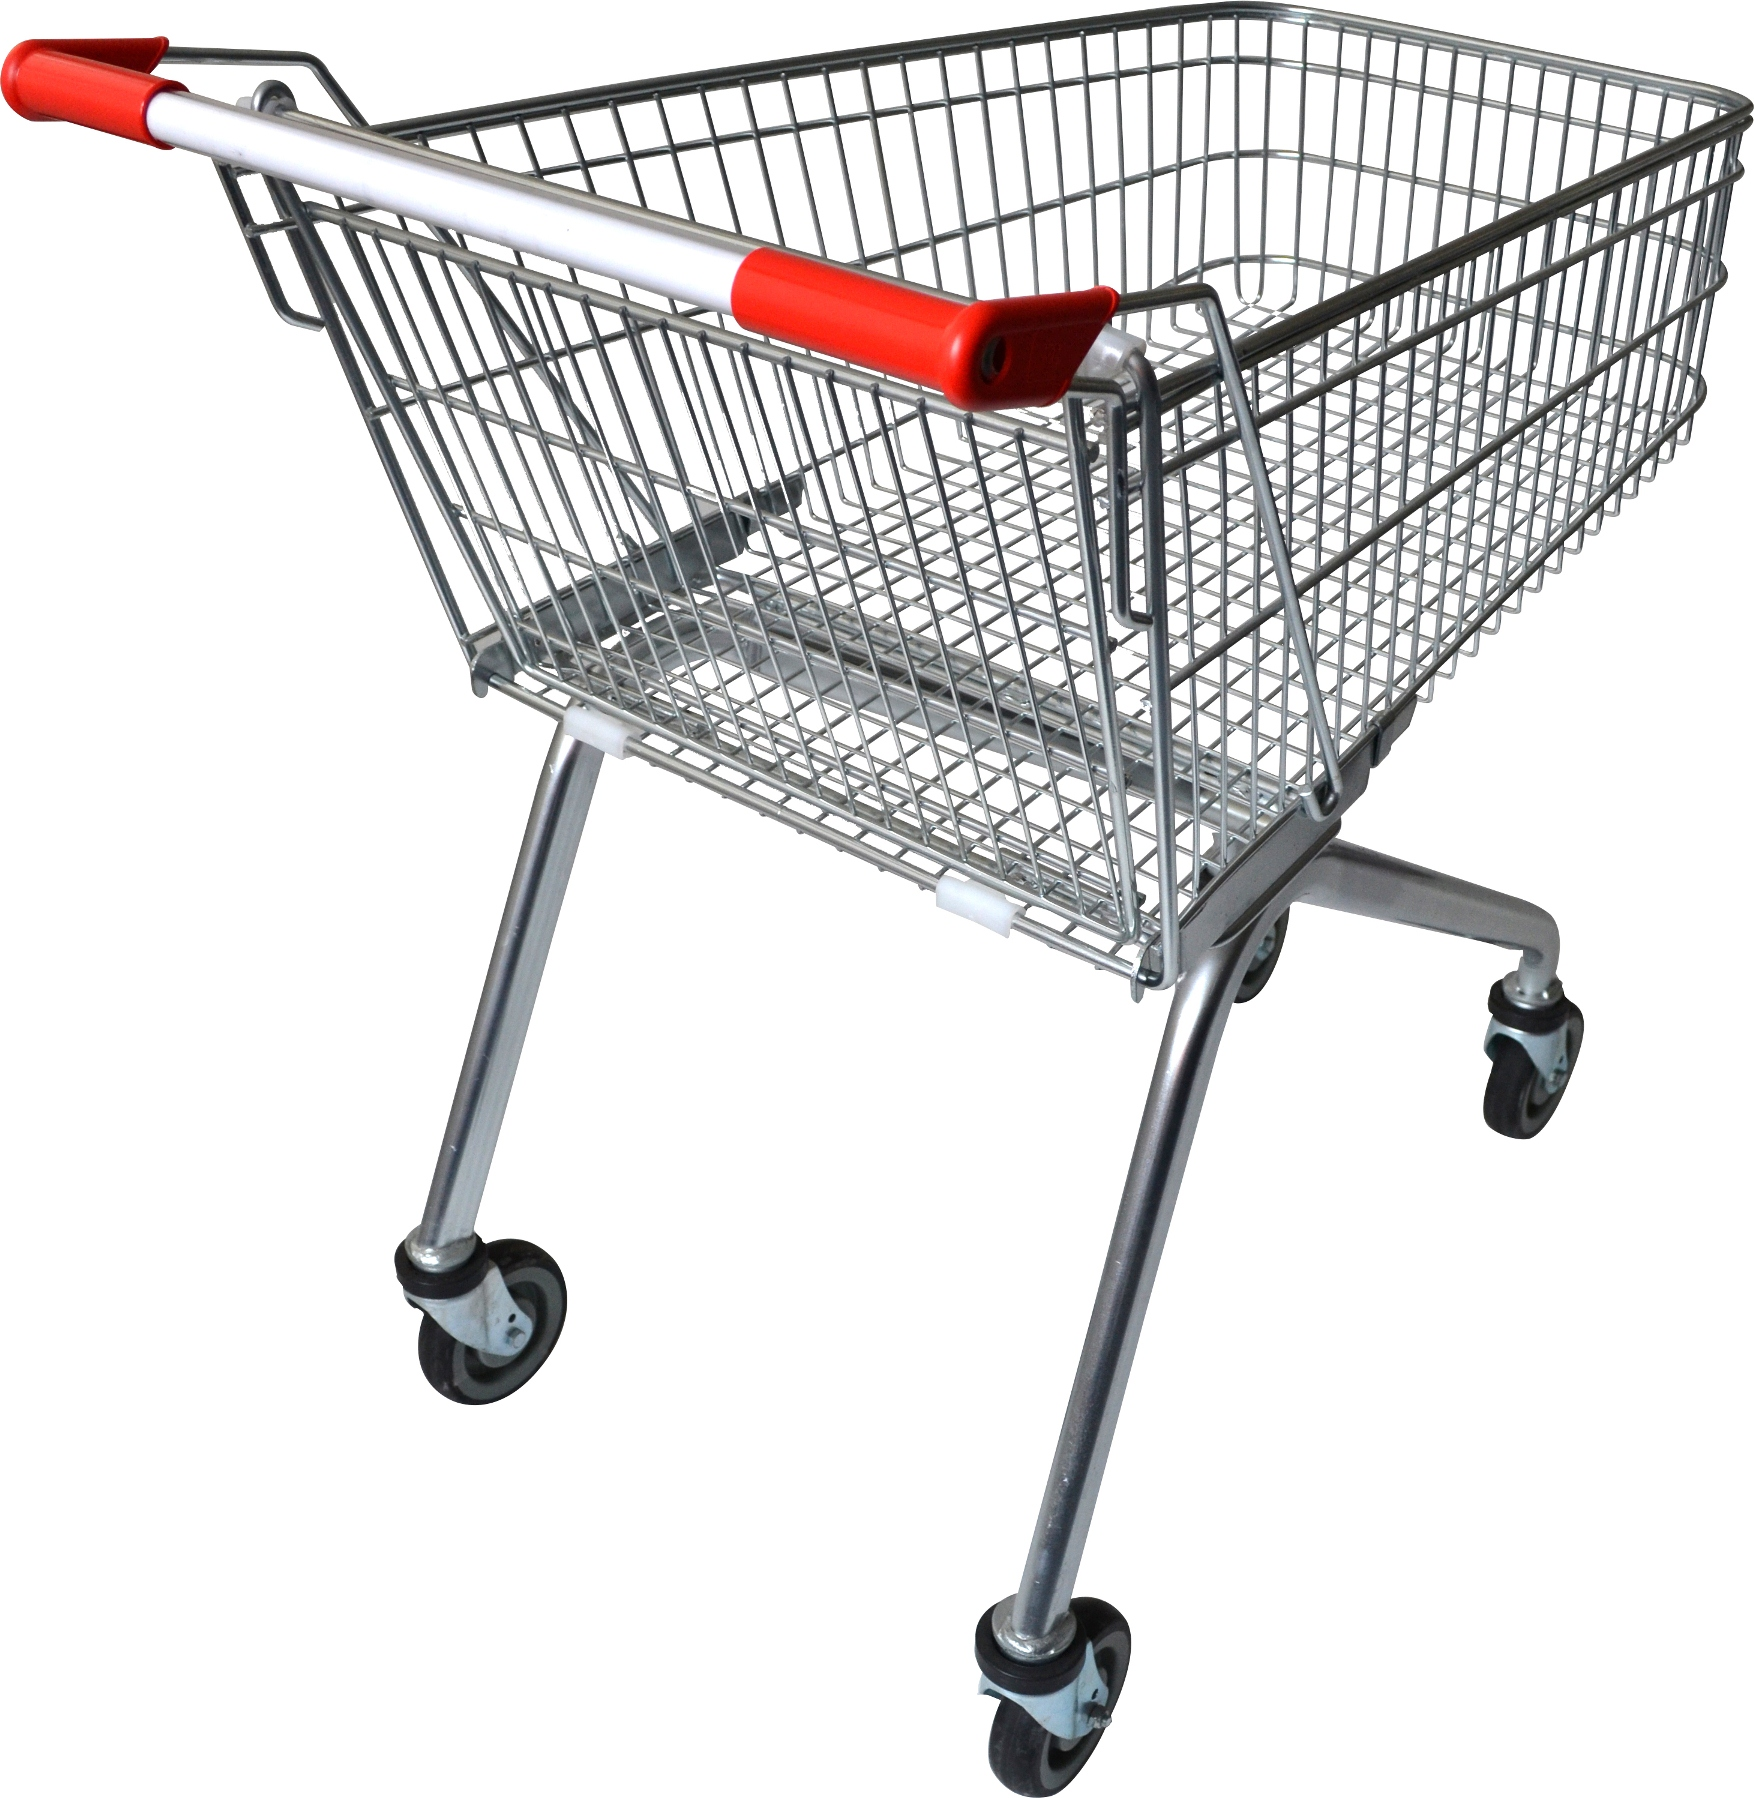 Ideal for small & large retail stores, supermarkets & fruit shops, this 100 litre zinc plated supermarket shopping trolley features a high shallow trolley basket, making grocery shopping easy & convenient. Also available in a 70 litre capacity.